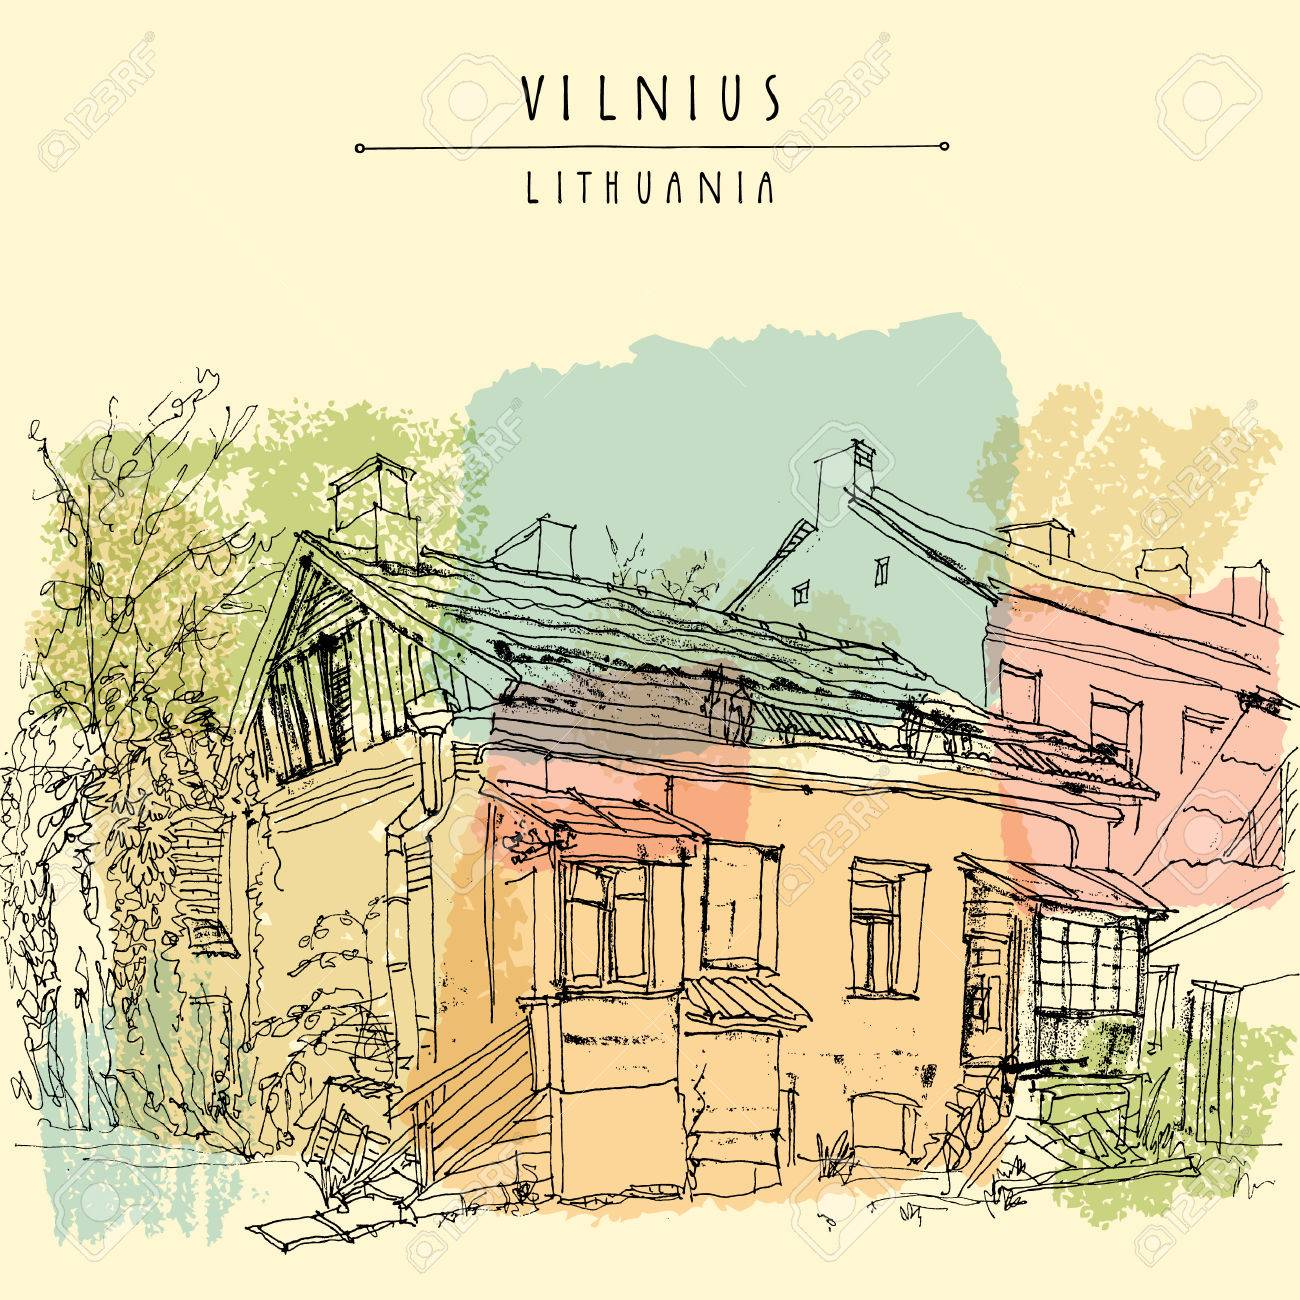 Traditional house in Vilnius old town, Lithuania, Europe. Freehand drawing. Travel sketchy art. Touristic poster, postcard template. Postcard design with Vilnius Lithuania hand lettered title. Vector - 47488509